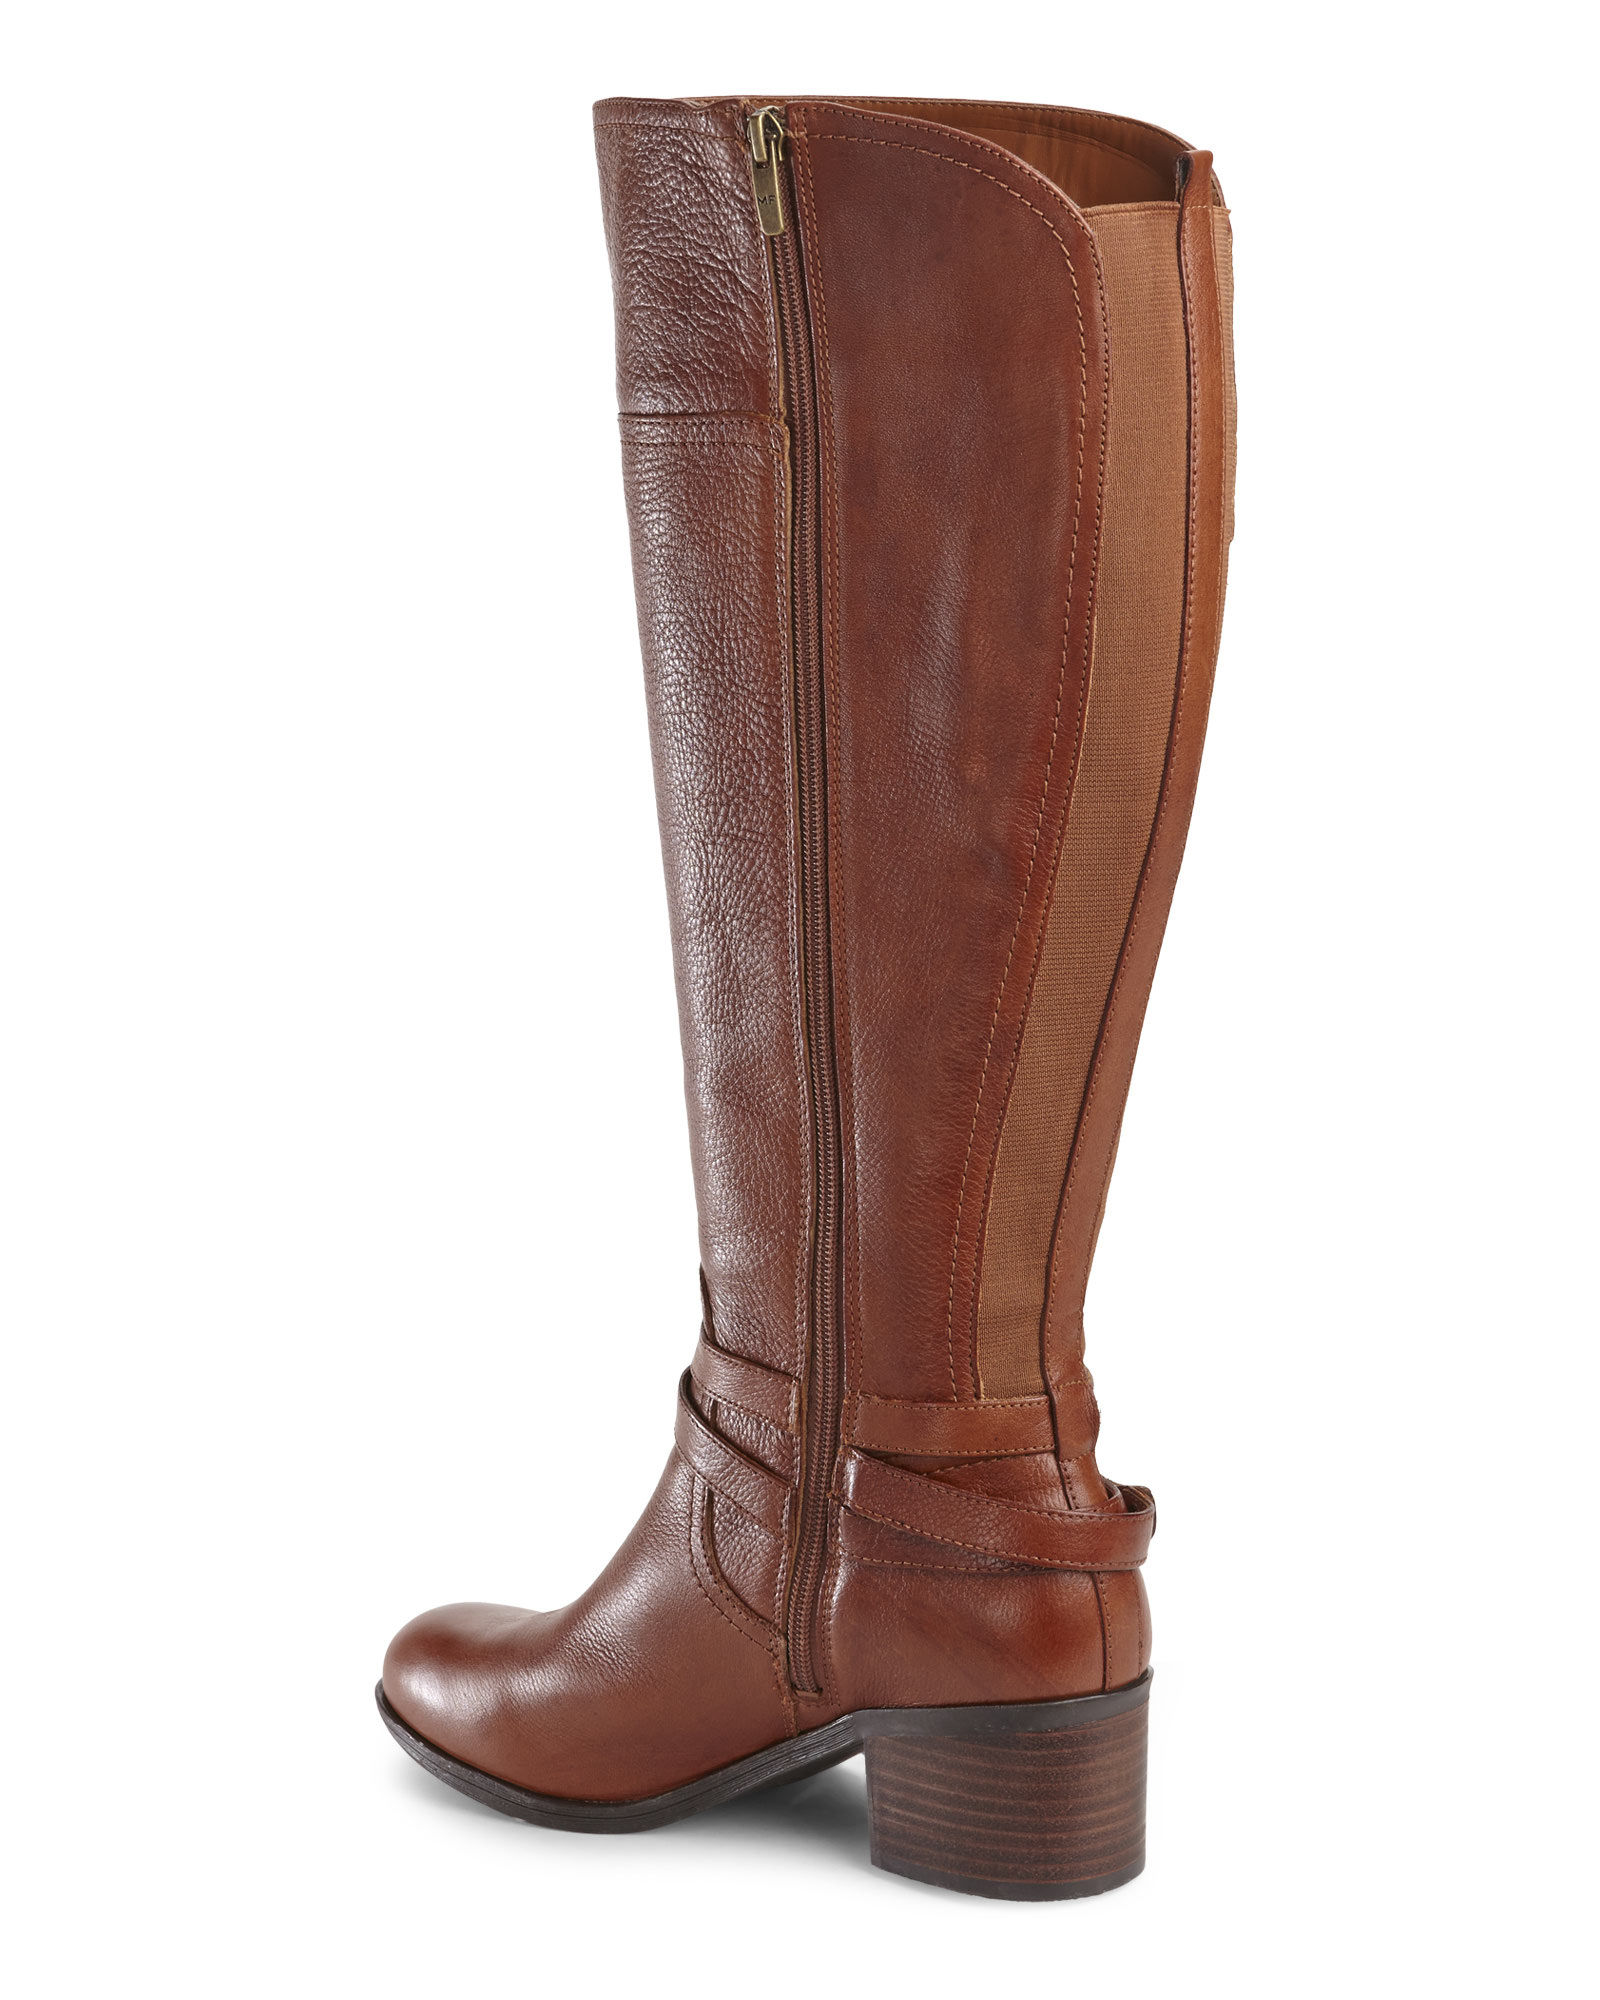 Marc fisher Cognac Kacee Wide Calf Riding Boots in Brown | Lyst